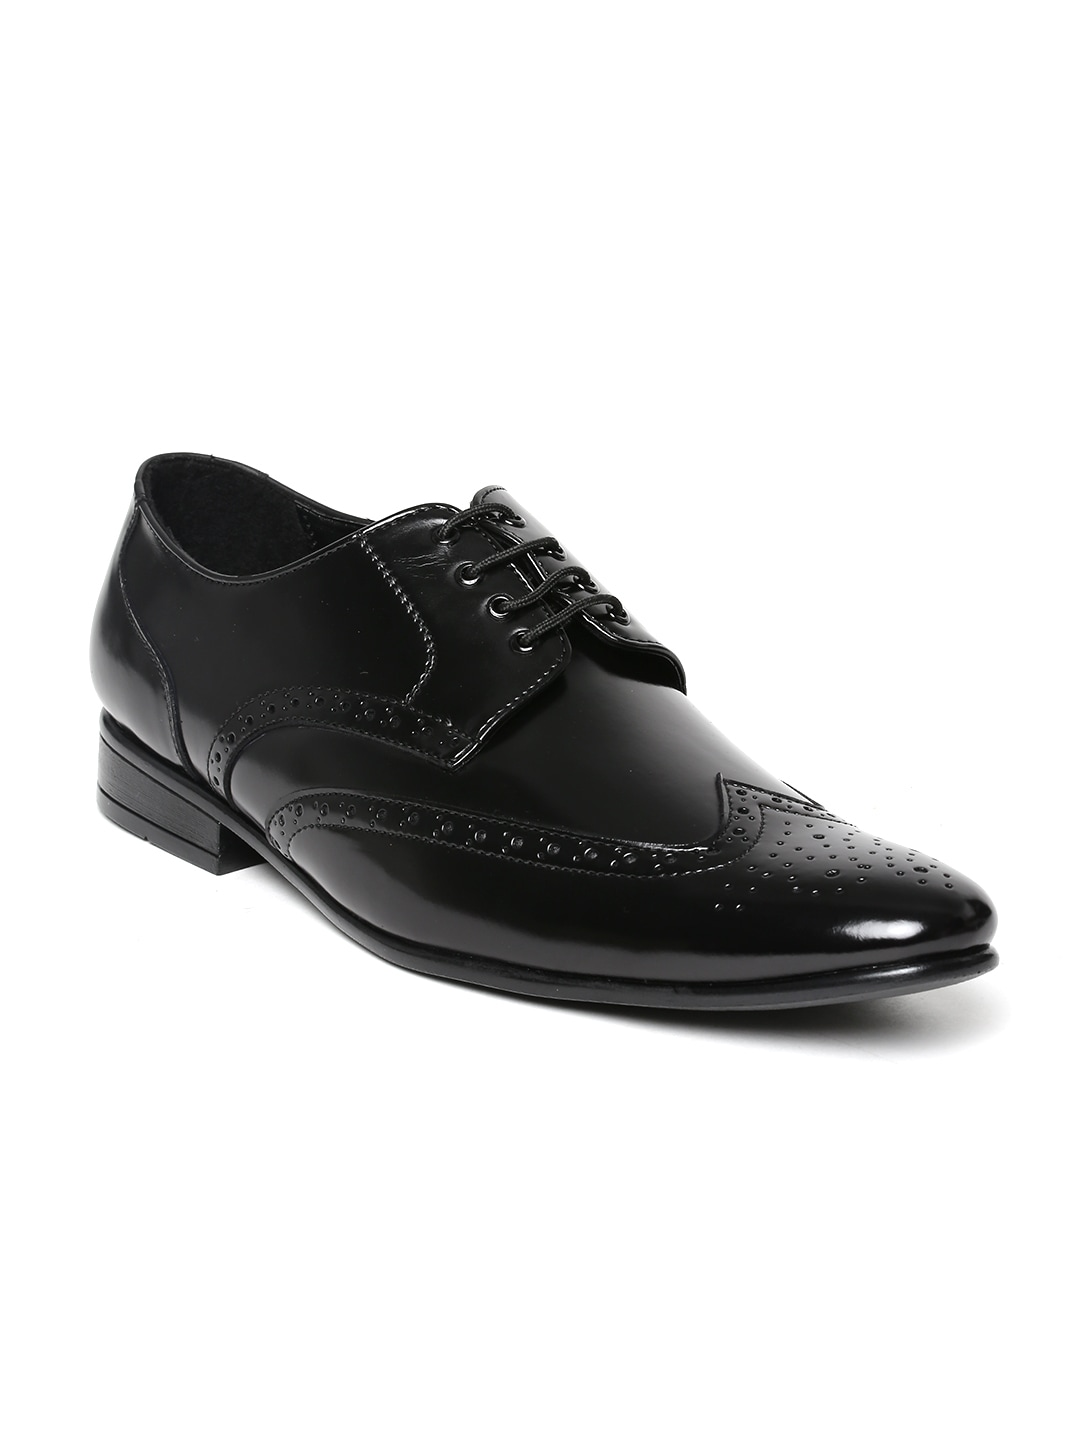 Formal Shoes For Men - Buy Men's Formal Shoes Online | Myntra